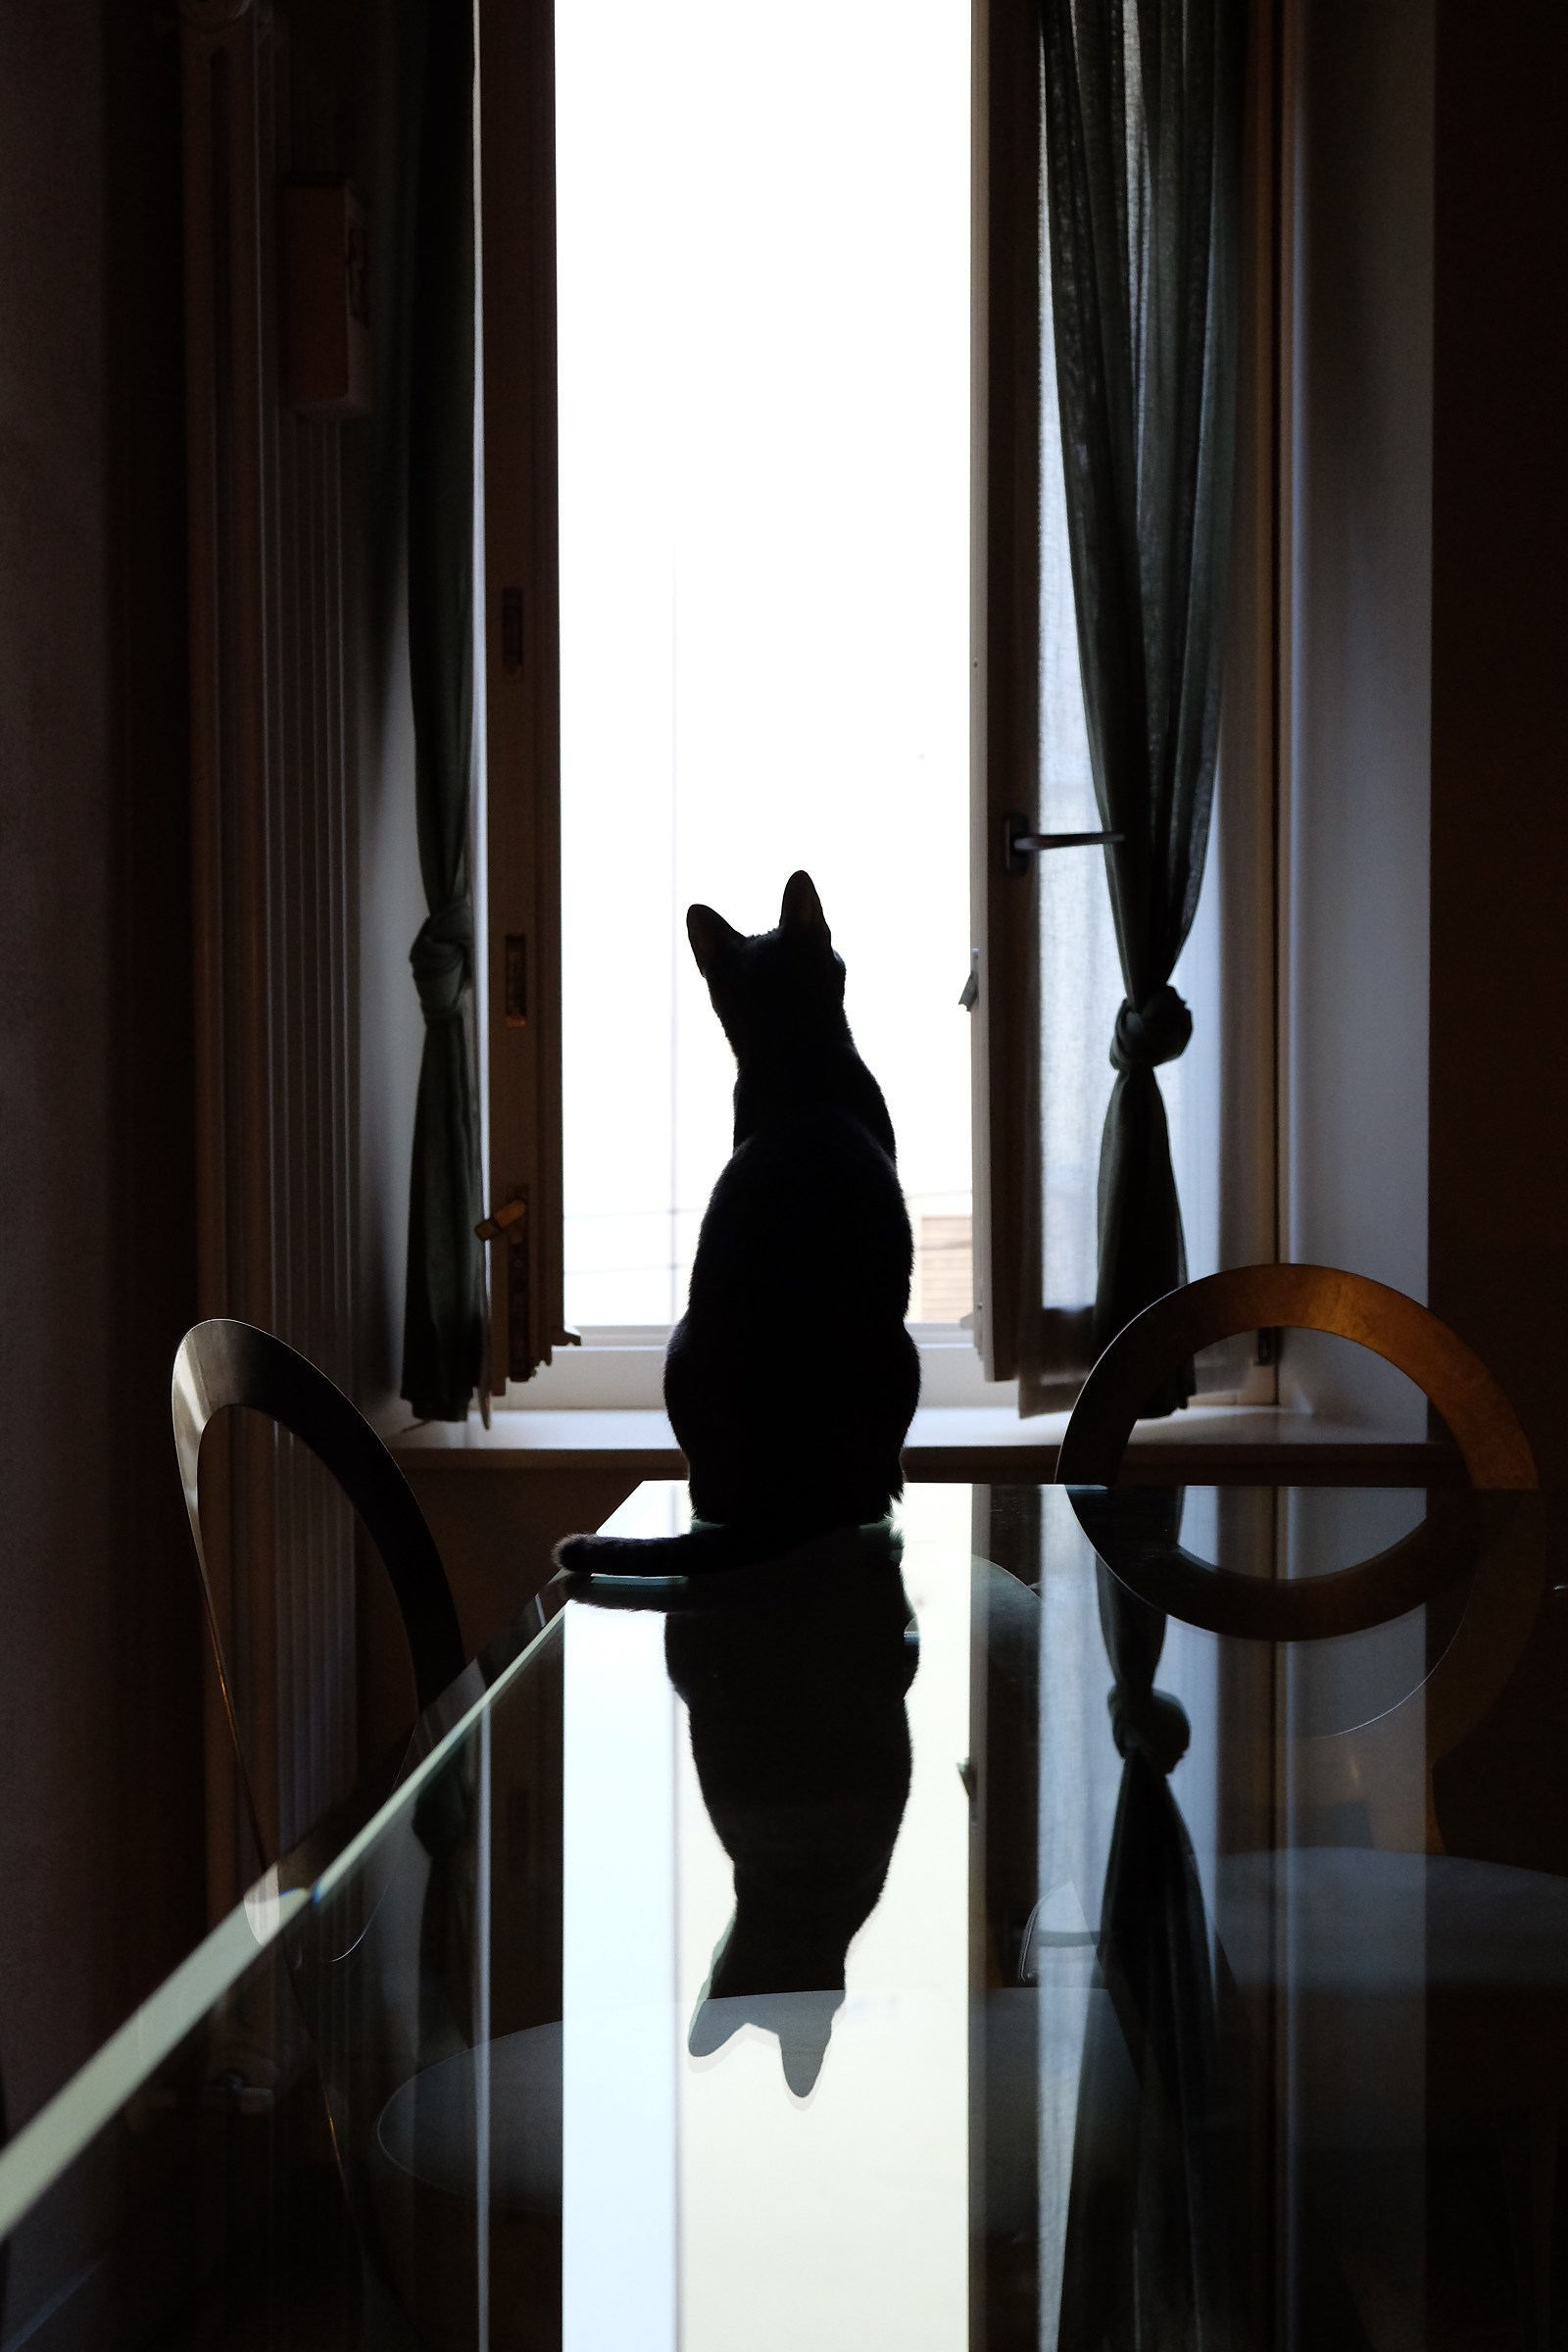 Observing the world ......